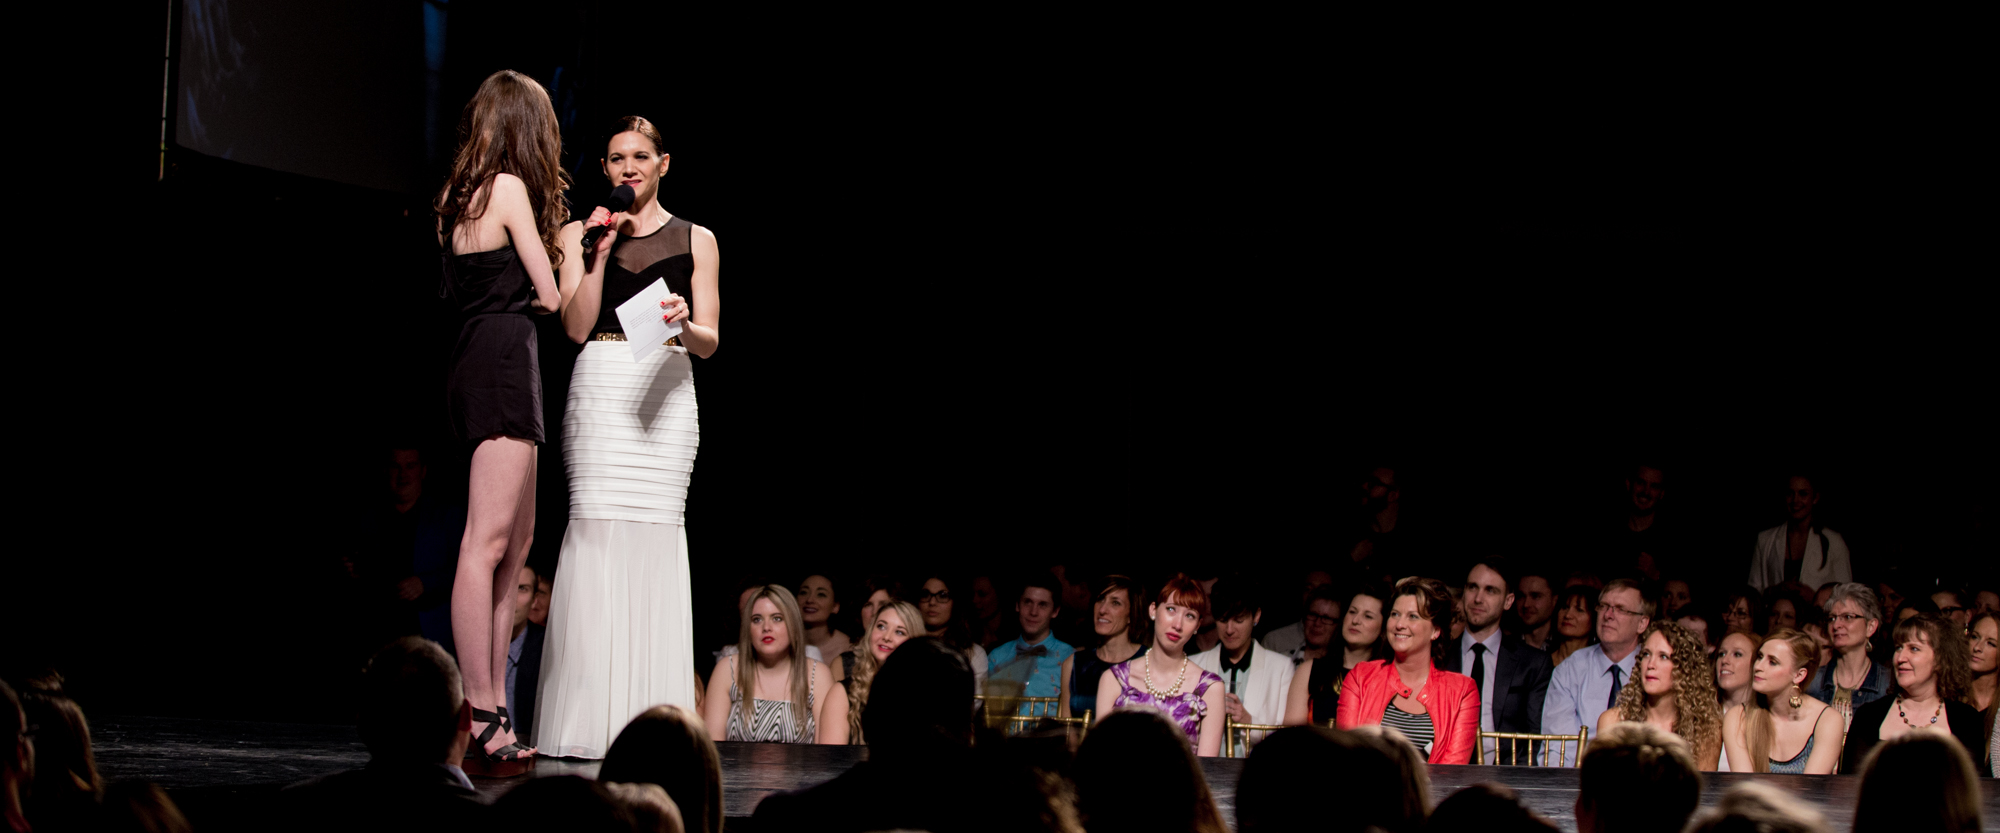 Saskfashionweek_may10-331.jpg